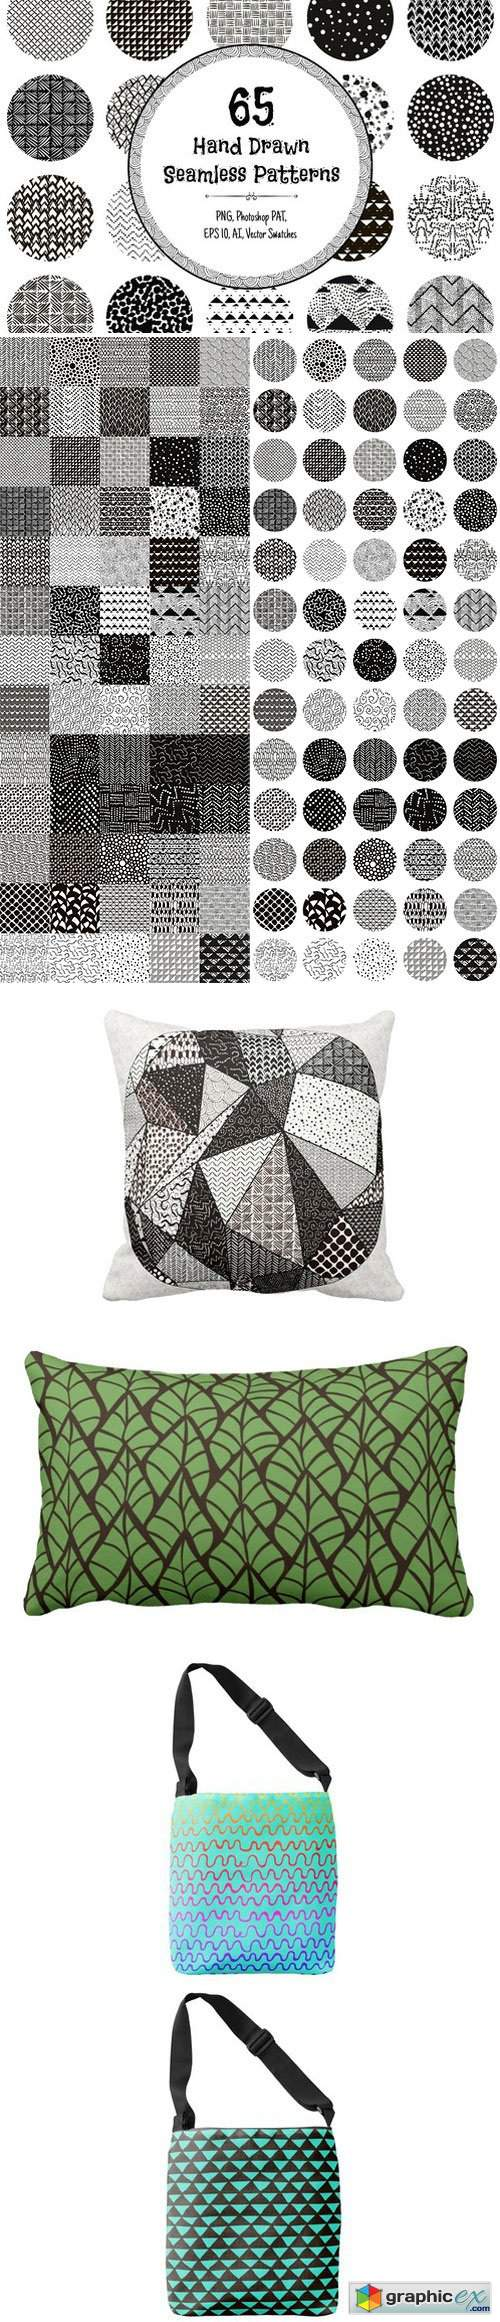 65 Monochrome Patterns